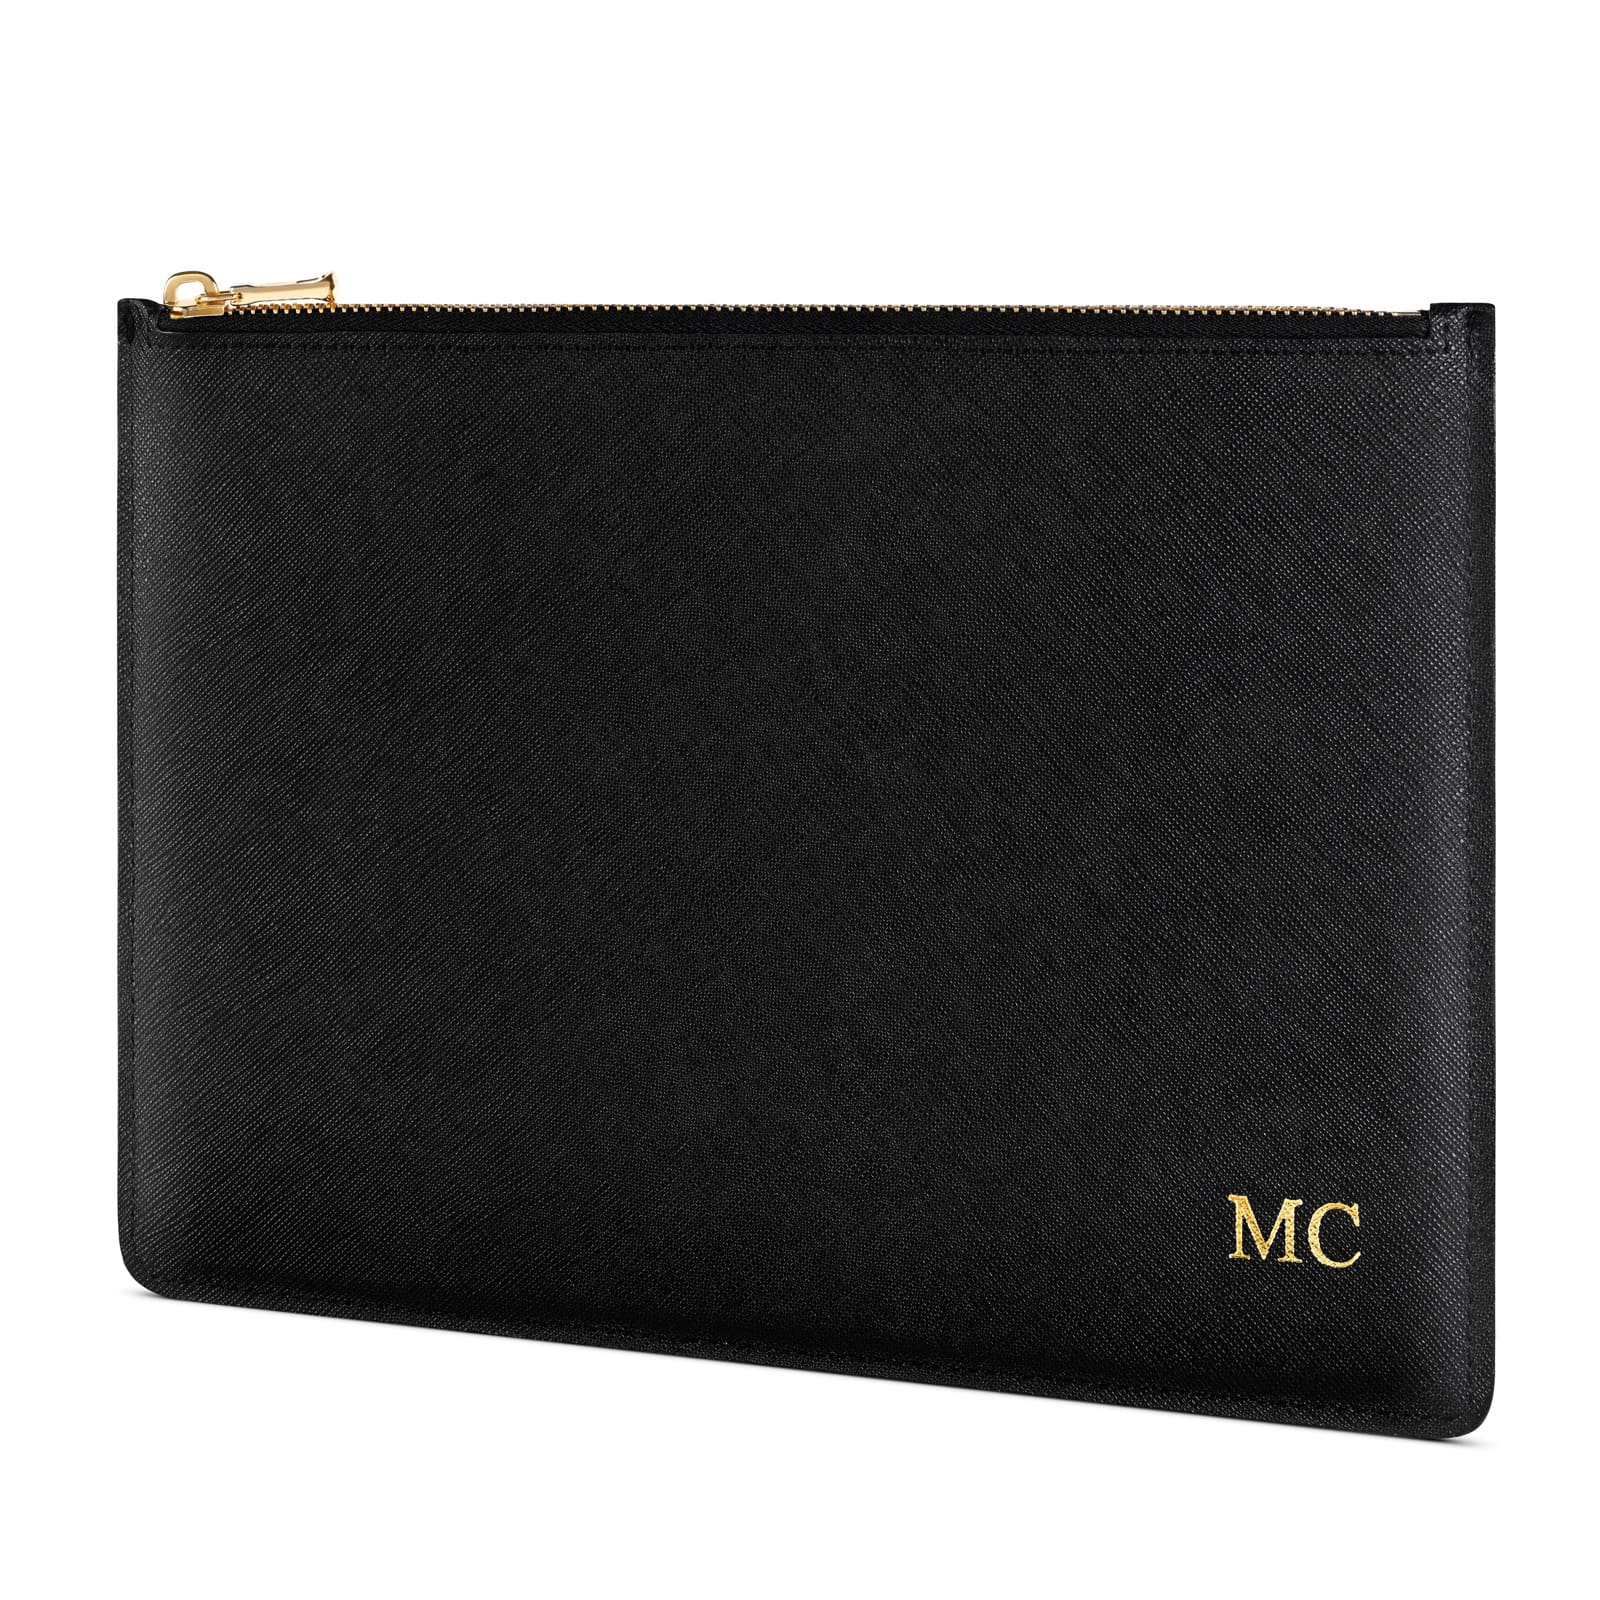 Personalised Black Saffiano Leather Pouch Side Angle